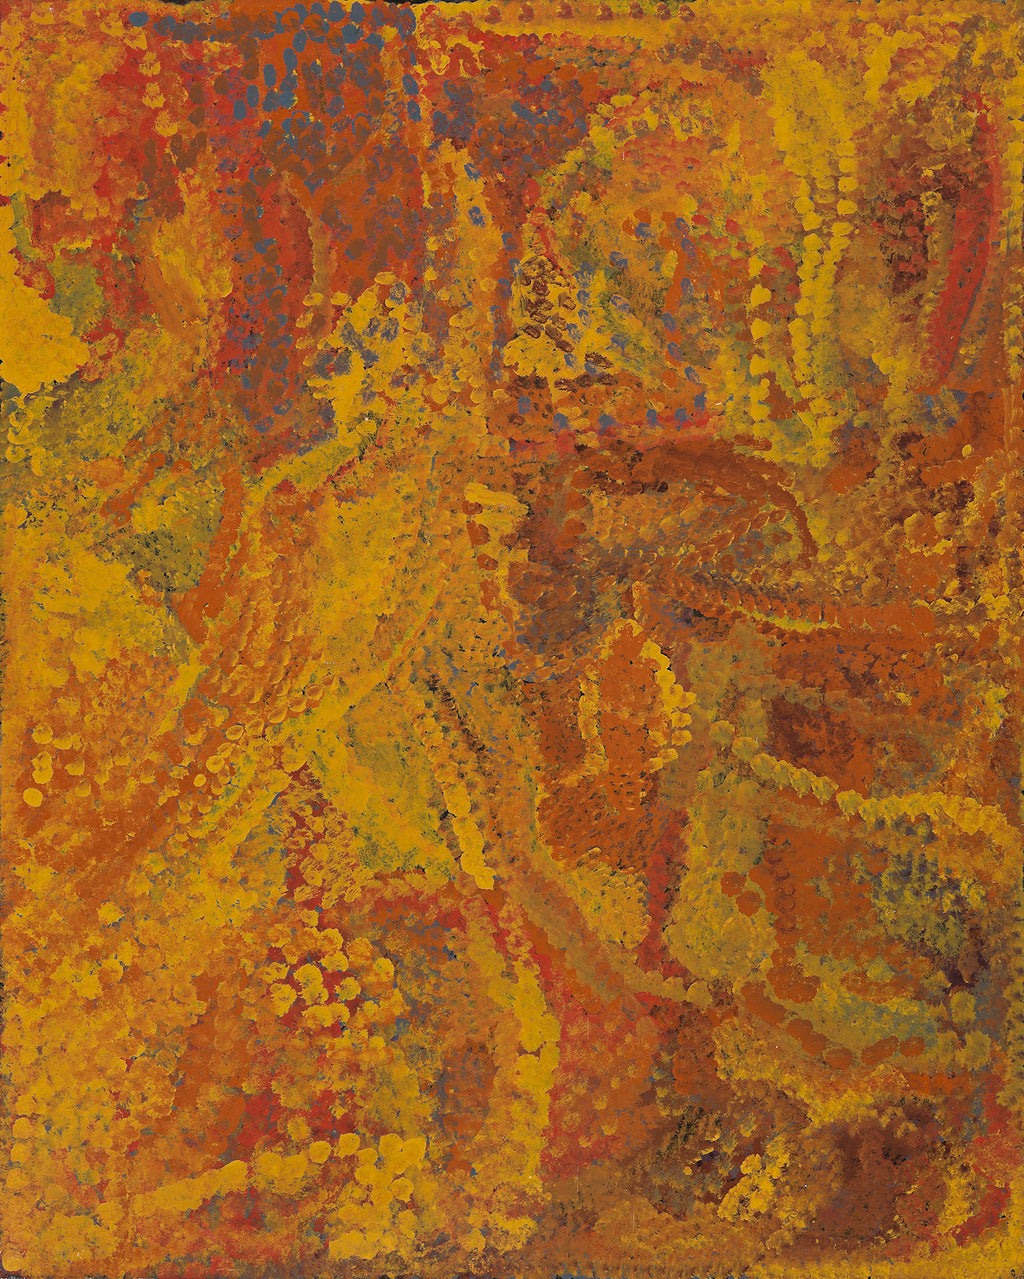 Emily Kame Kngwarreye, 'Alhalkere - My Country', 1992, 92H014, 120x151cm - Delmore Gallery